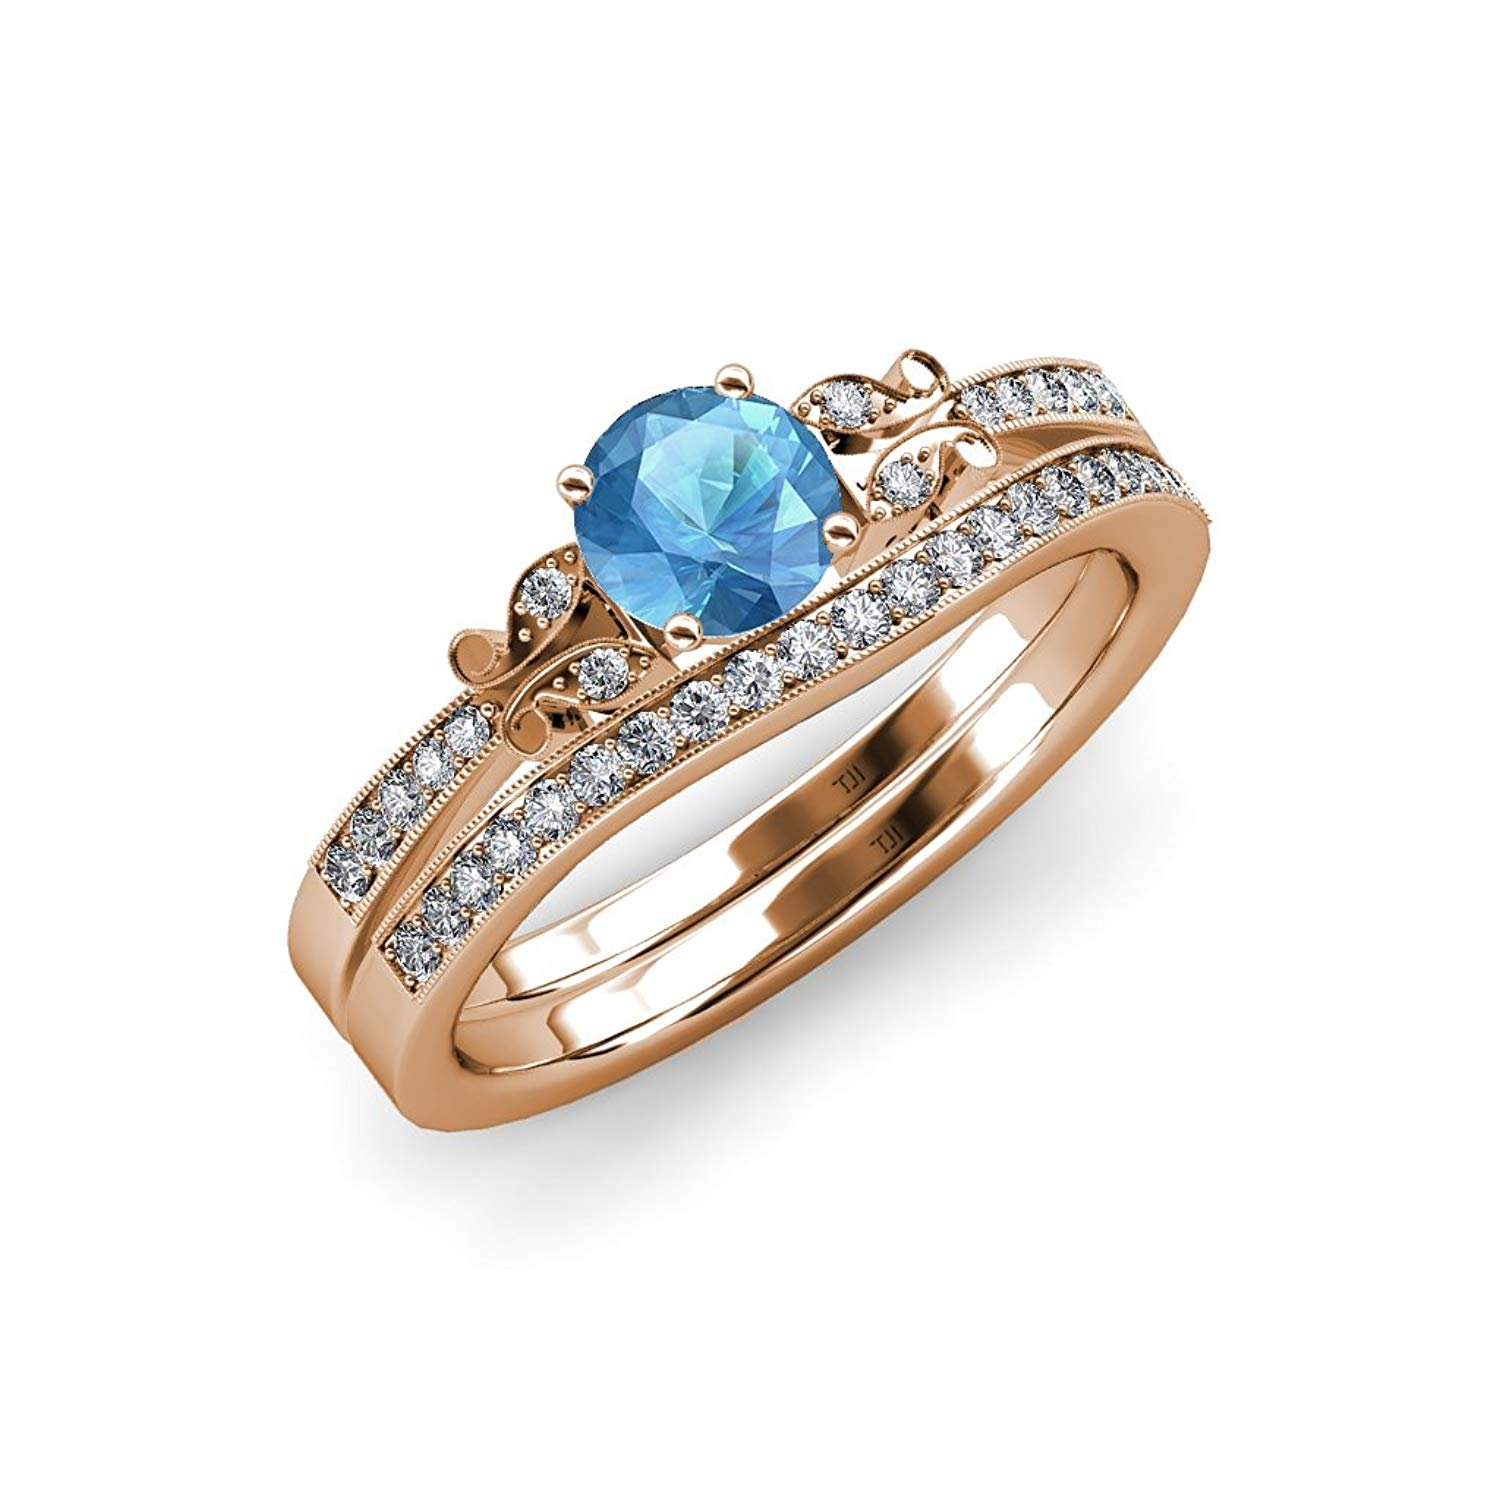 Blue Topaz & Diamond Butterfly Engagement Ring & Wedding Band Set 1.40 ct tw in 14K Rose Gold.size 6.0 by TriJewels